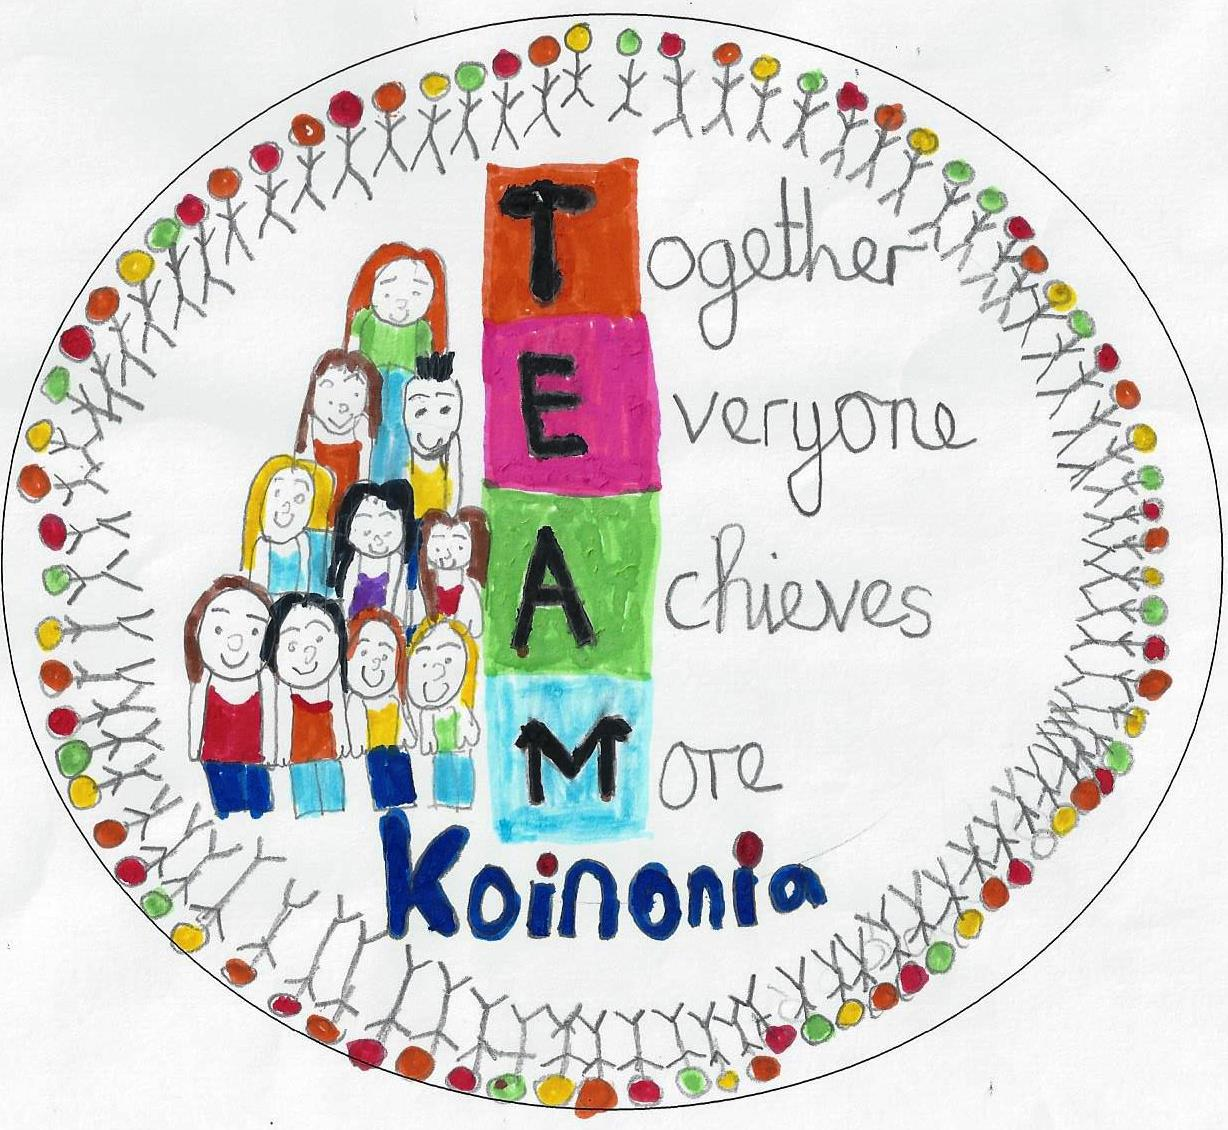 Christian Value of the Month : Koinonia